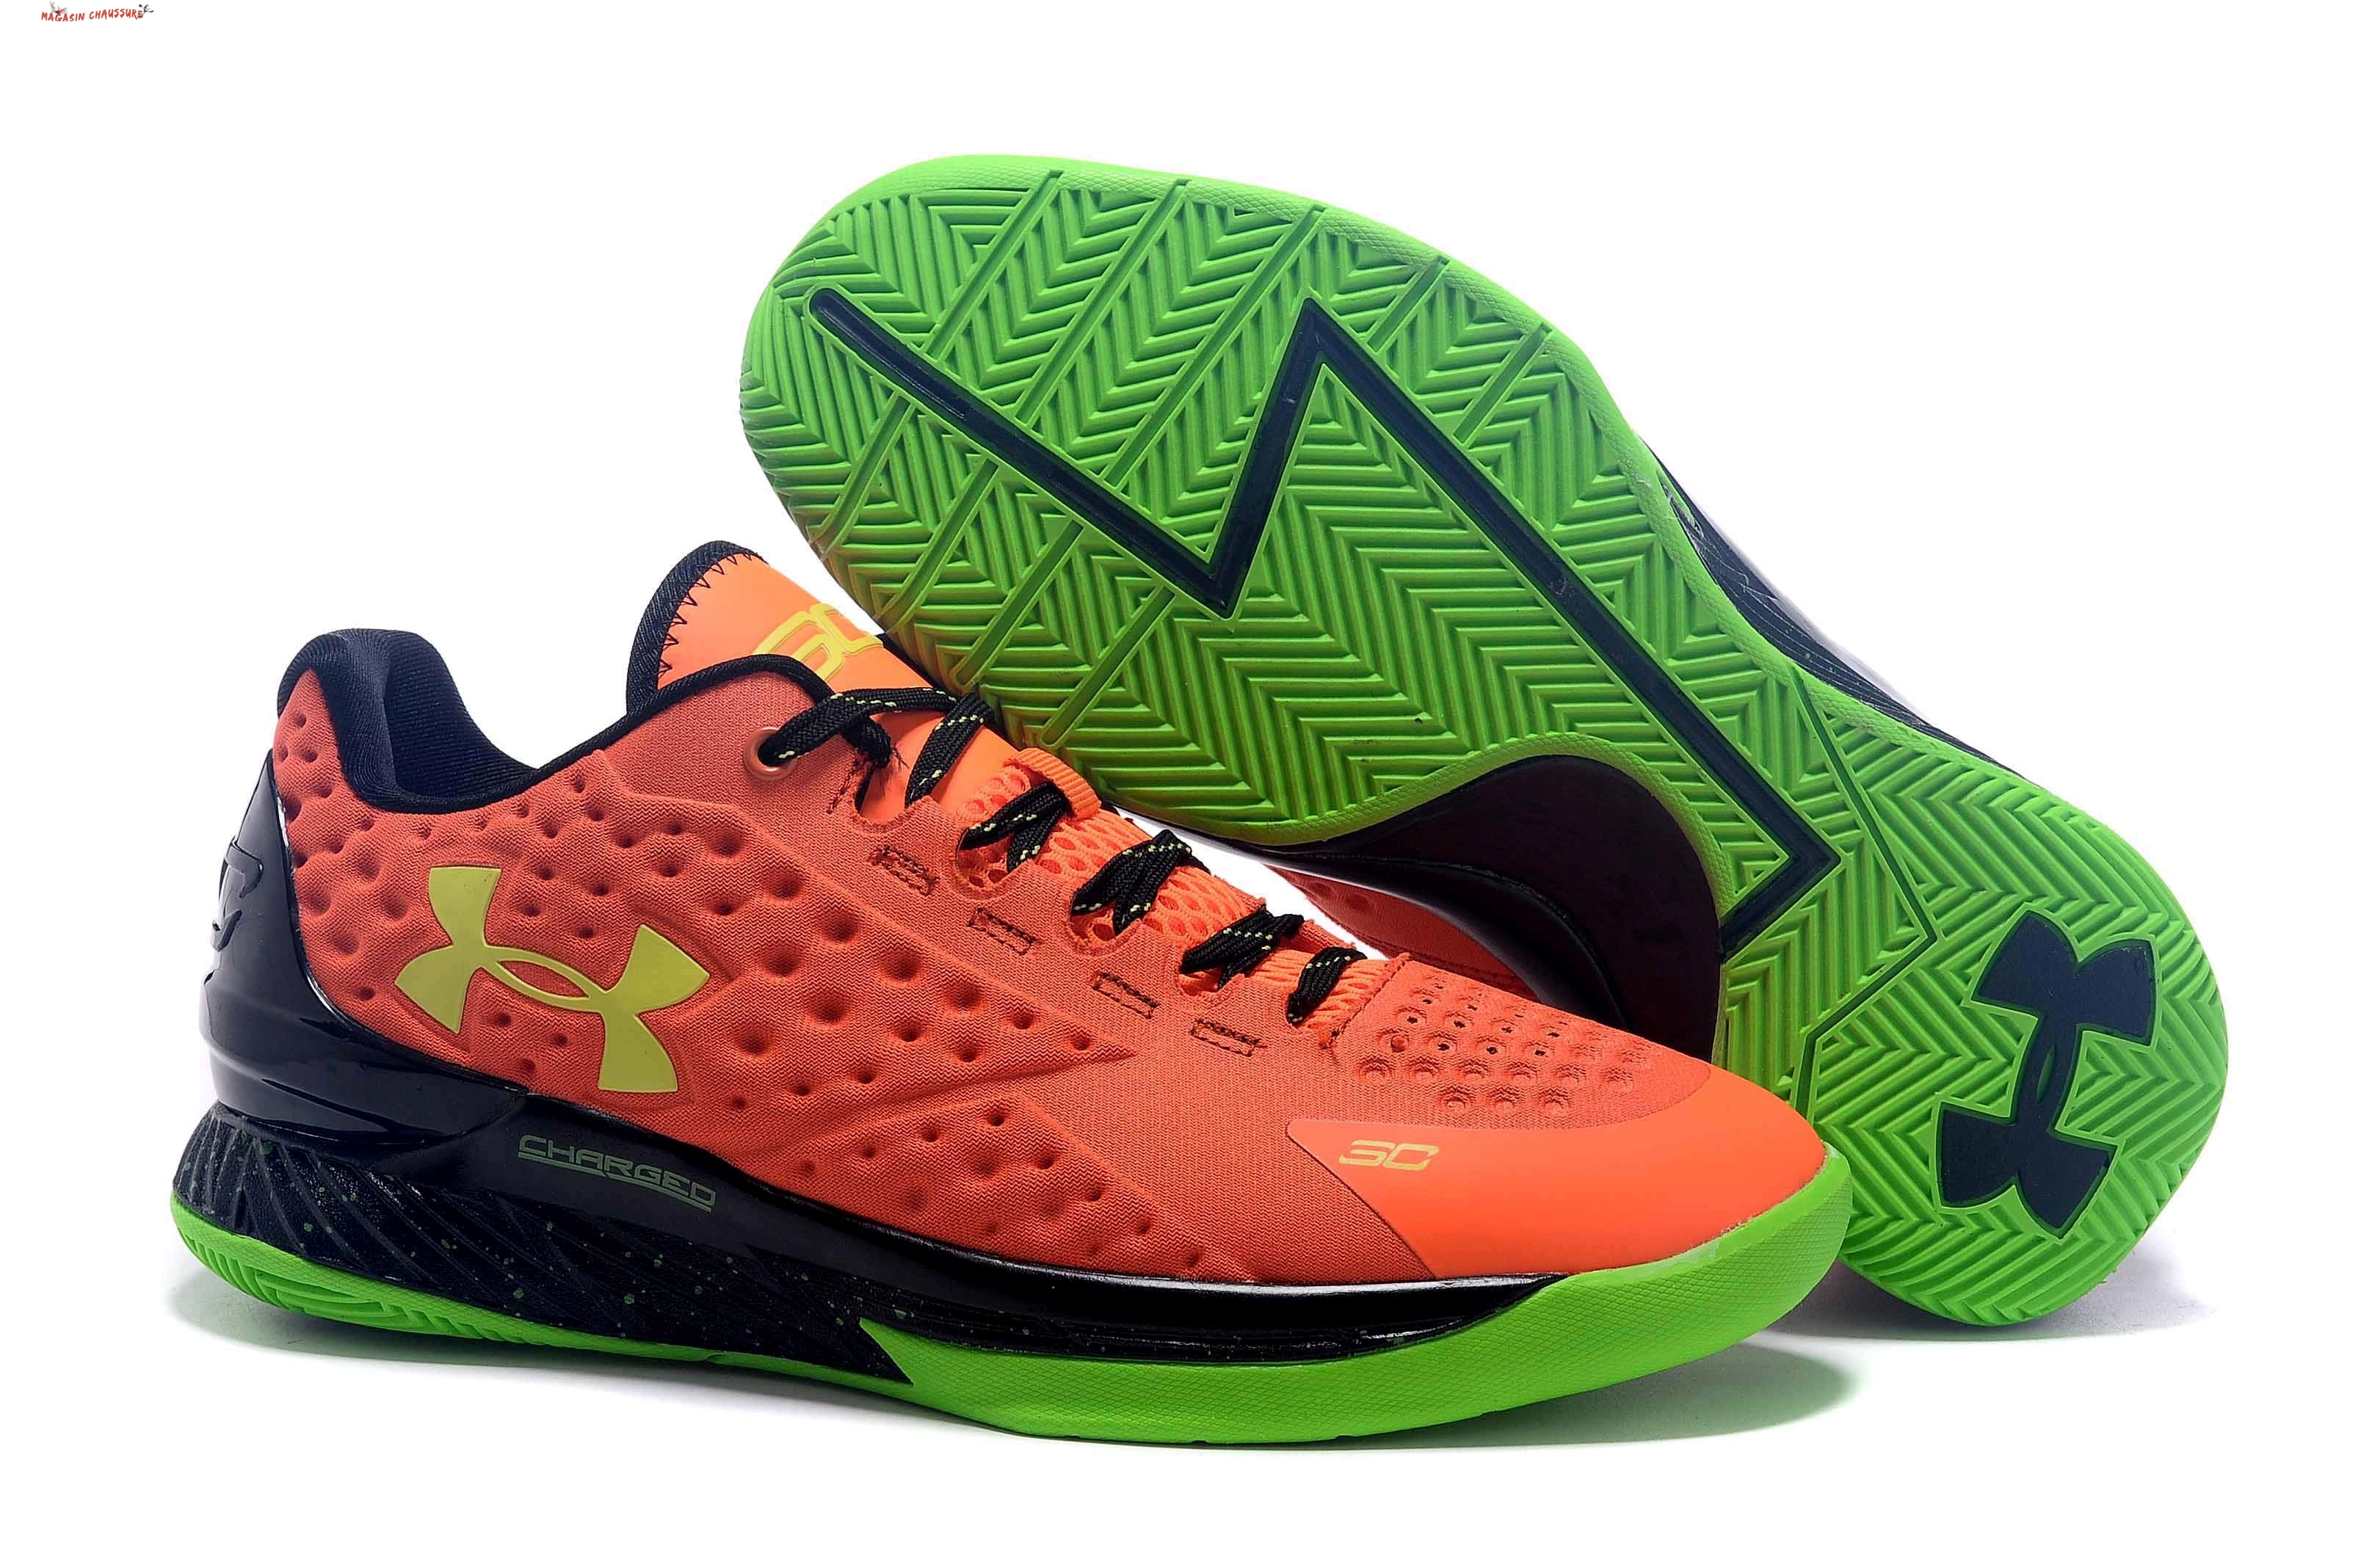 Stephen Curry 1 - Femme Orange Vert Chaussure de Basket